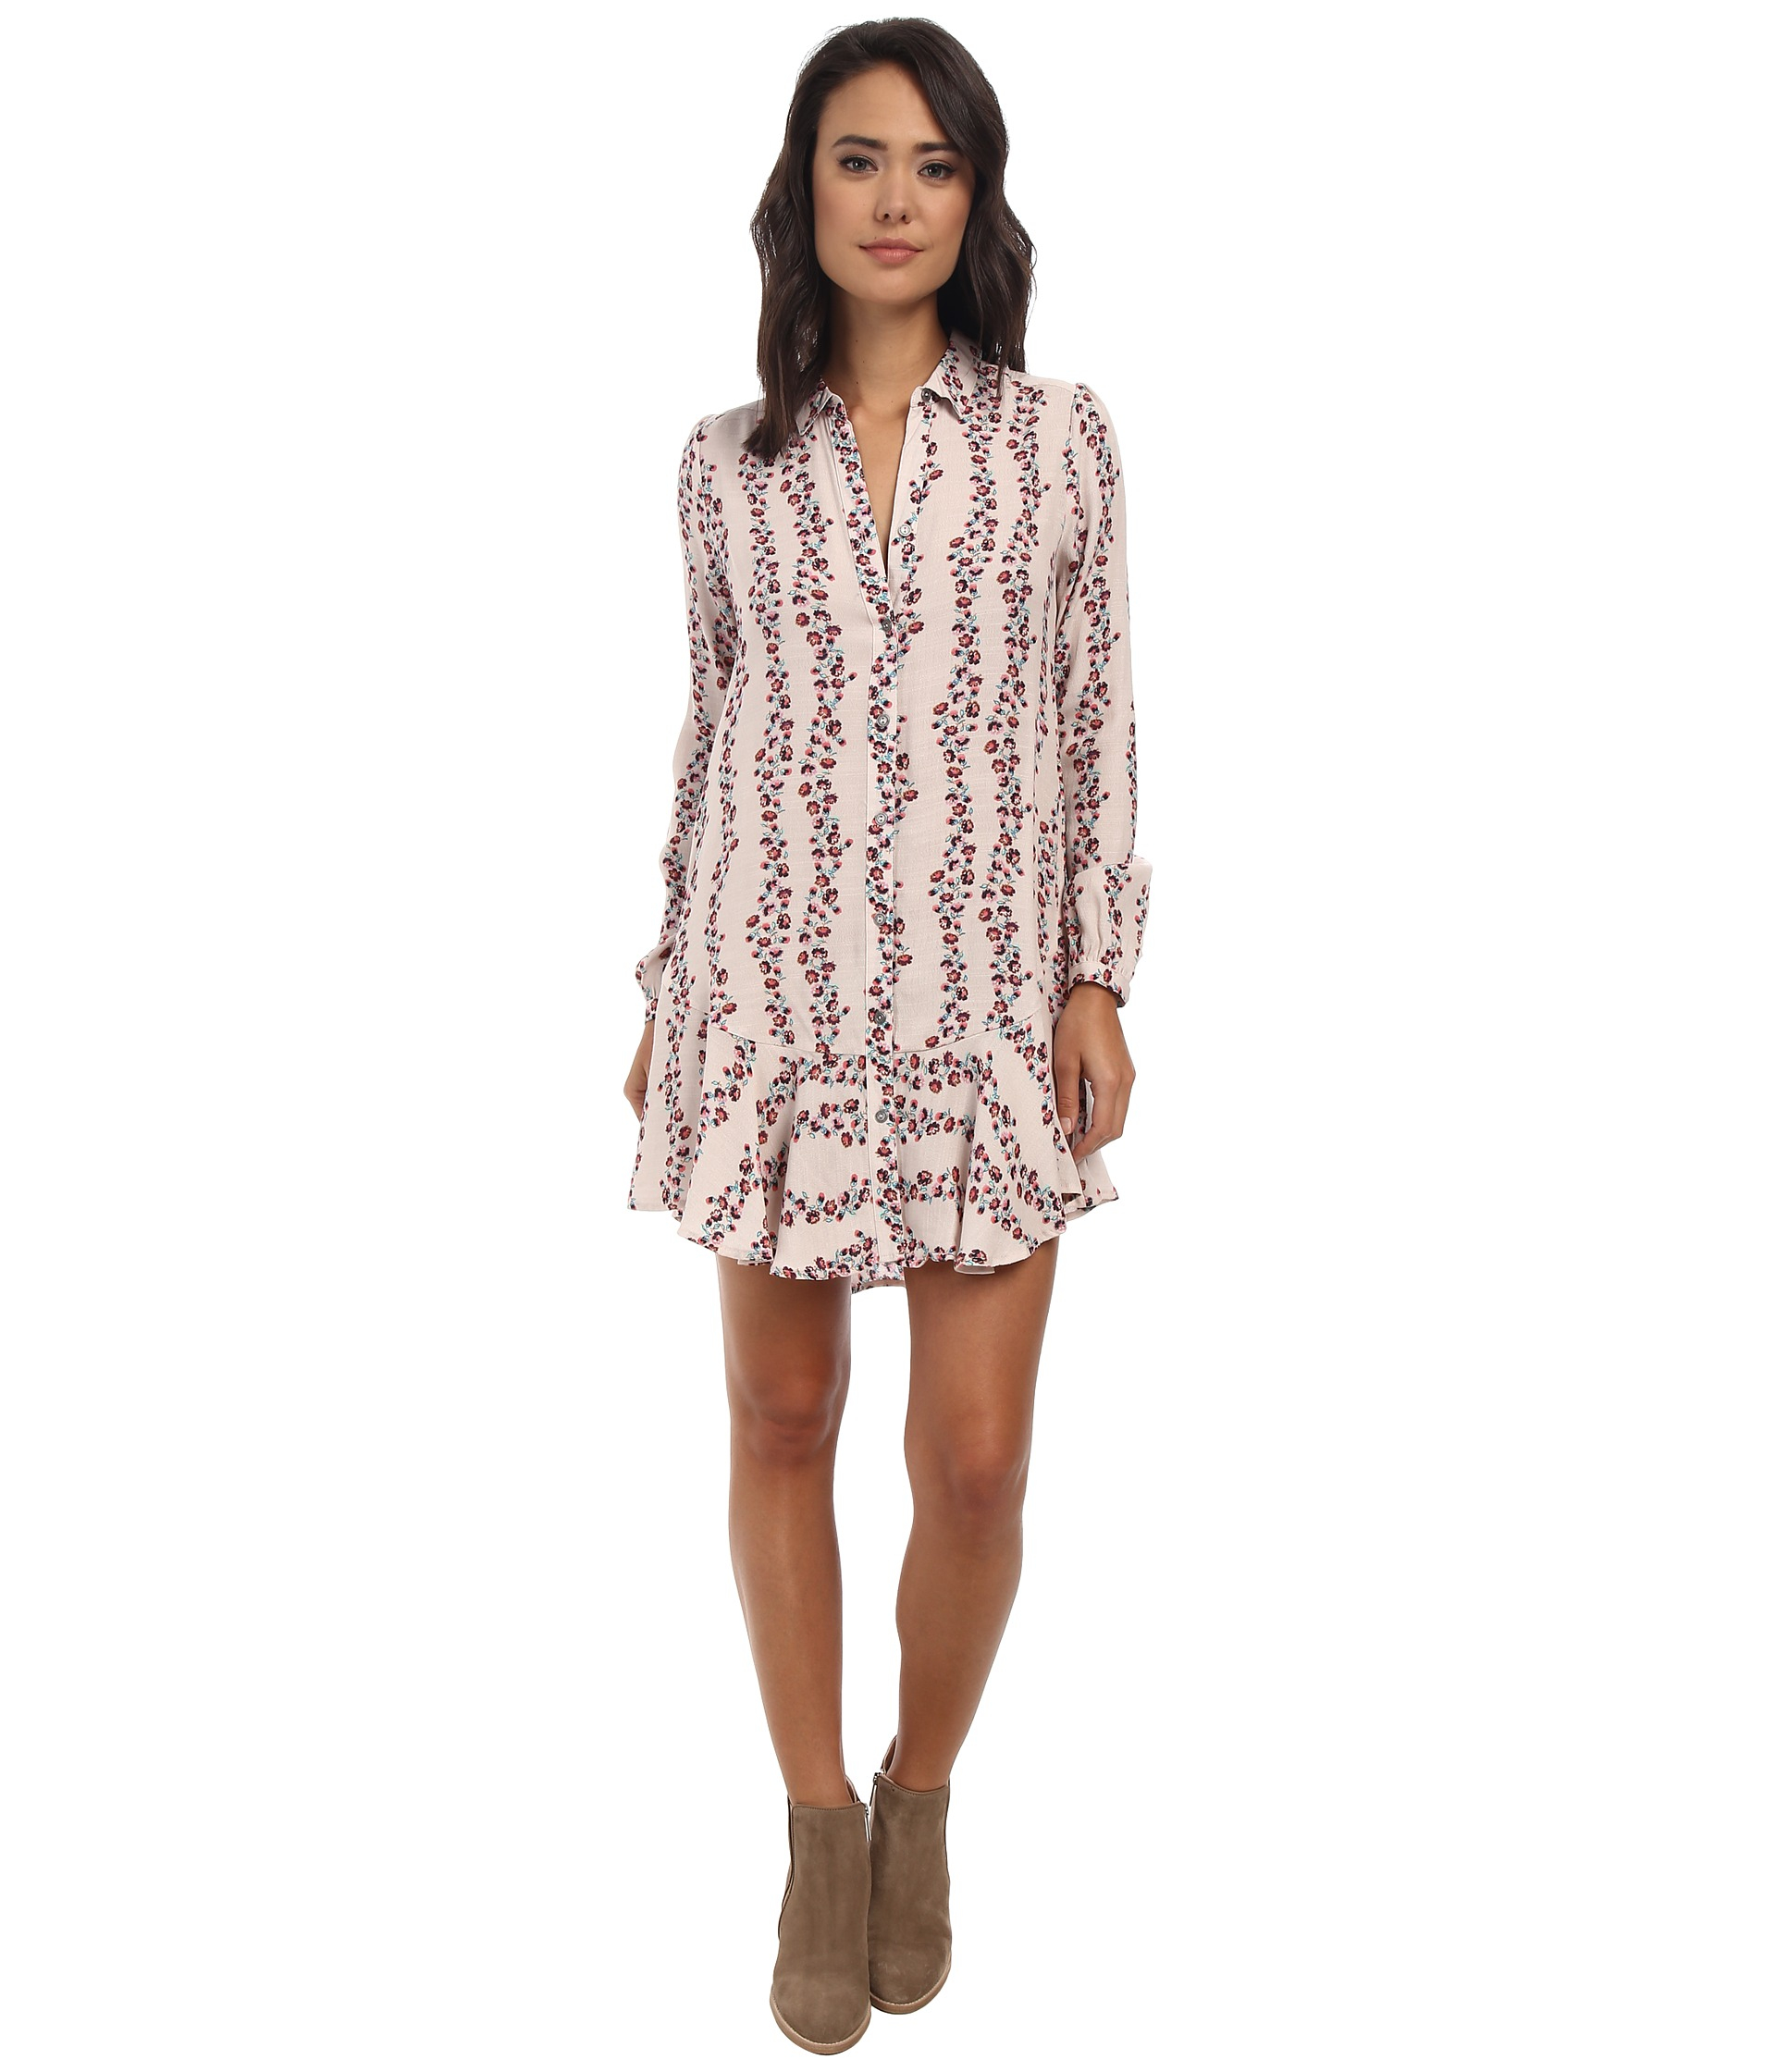 746ac1ad2a85b Lyst - Free People Button Down Shirtdress in Natural